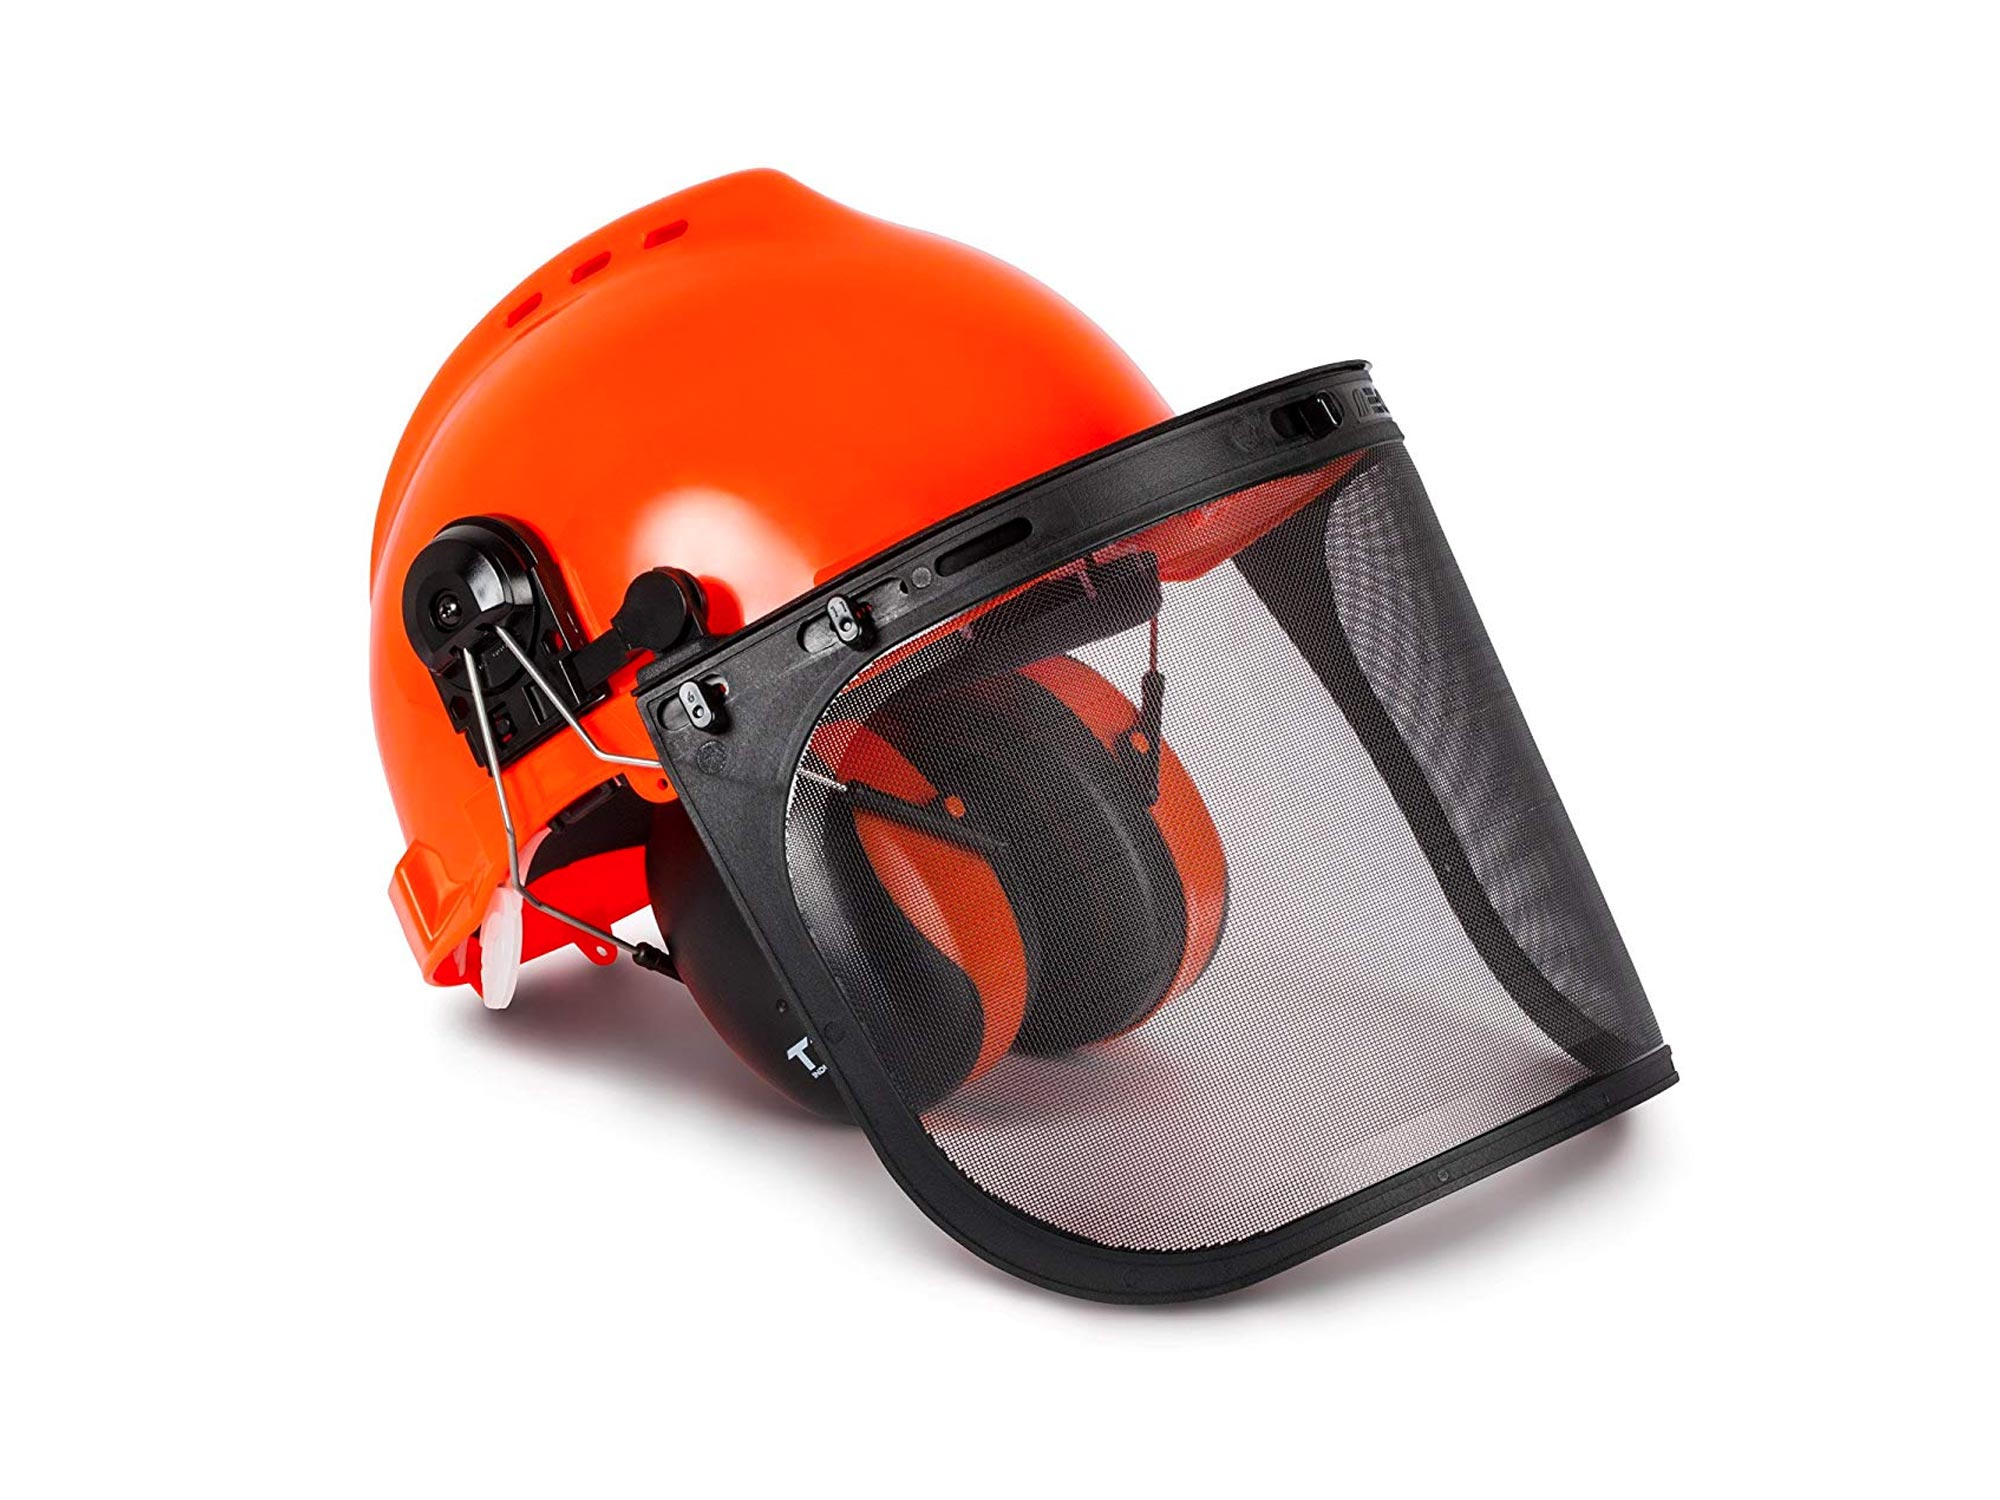 TR Industrial Forestry Safety Helmet and Hearing Protection System